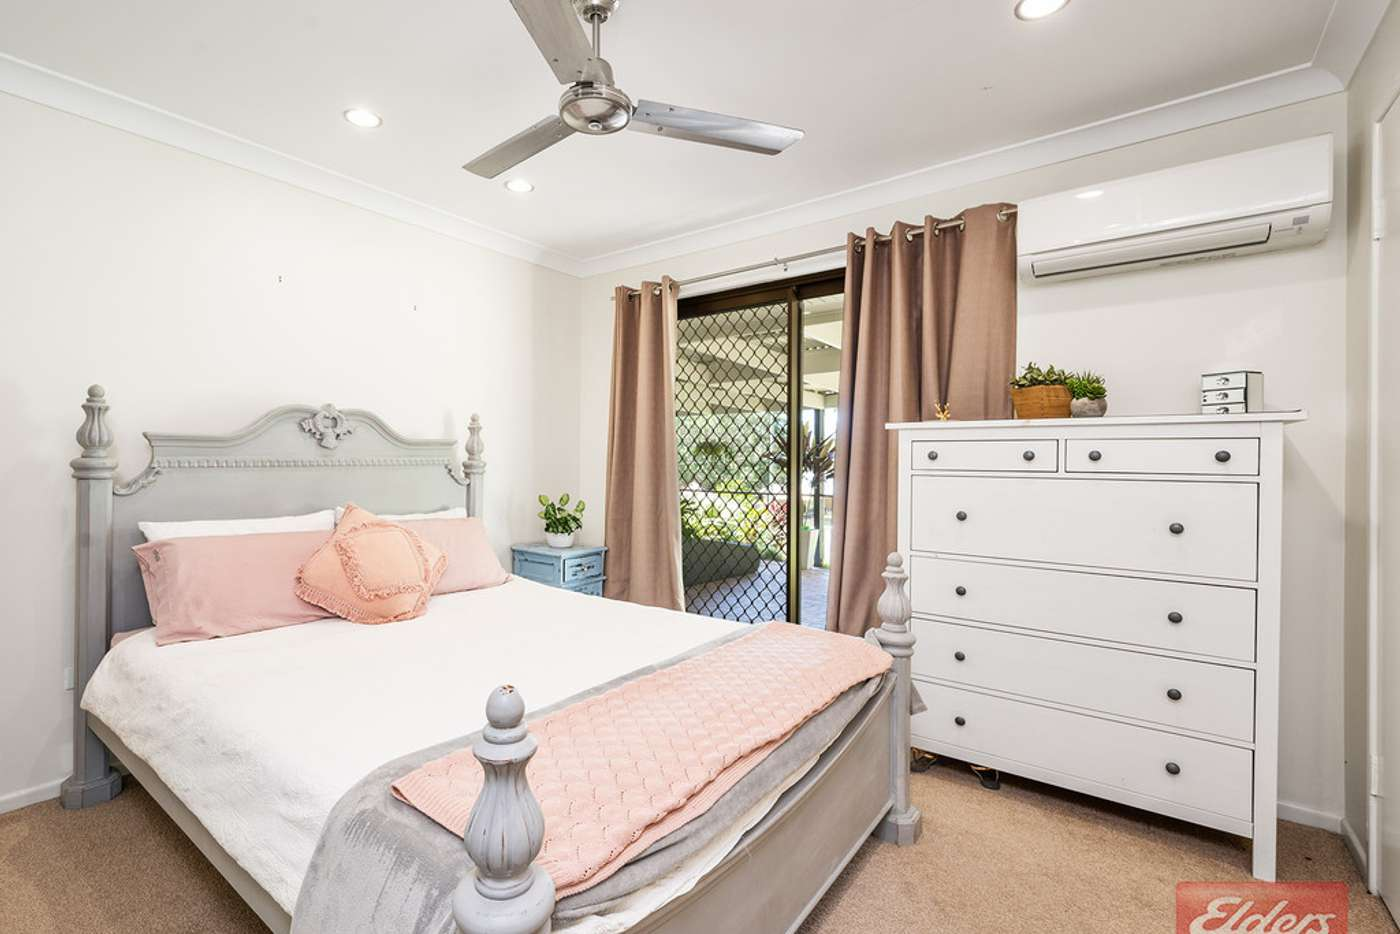 Seventh view of Homely house listing, 5 TRUDY CRESCENT, Cornubia QLD 4130